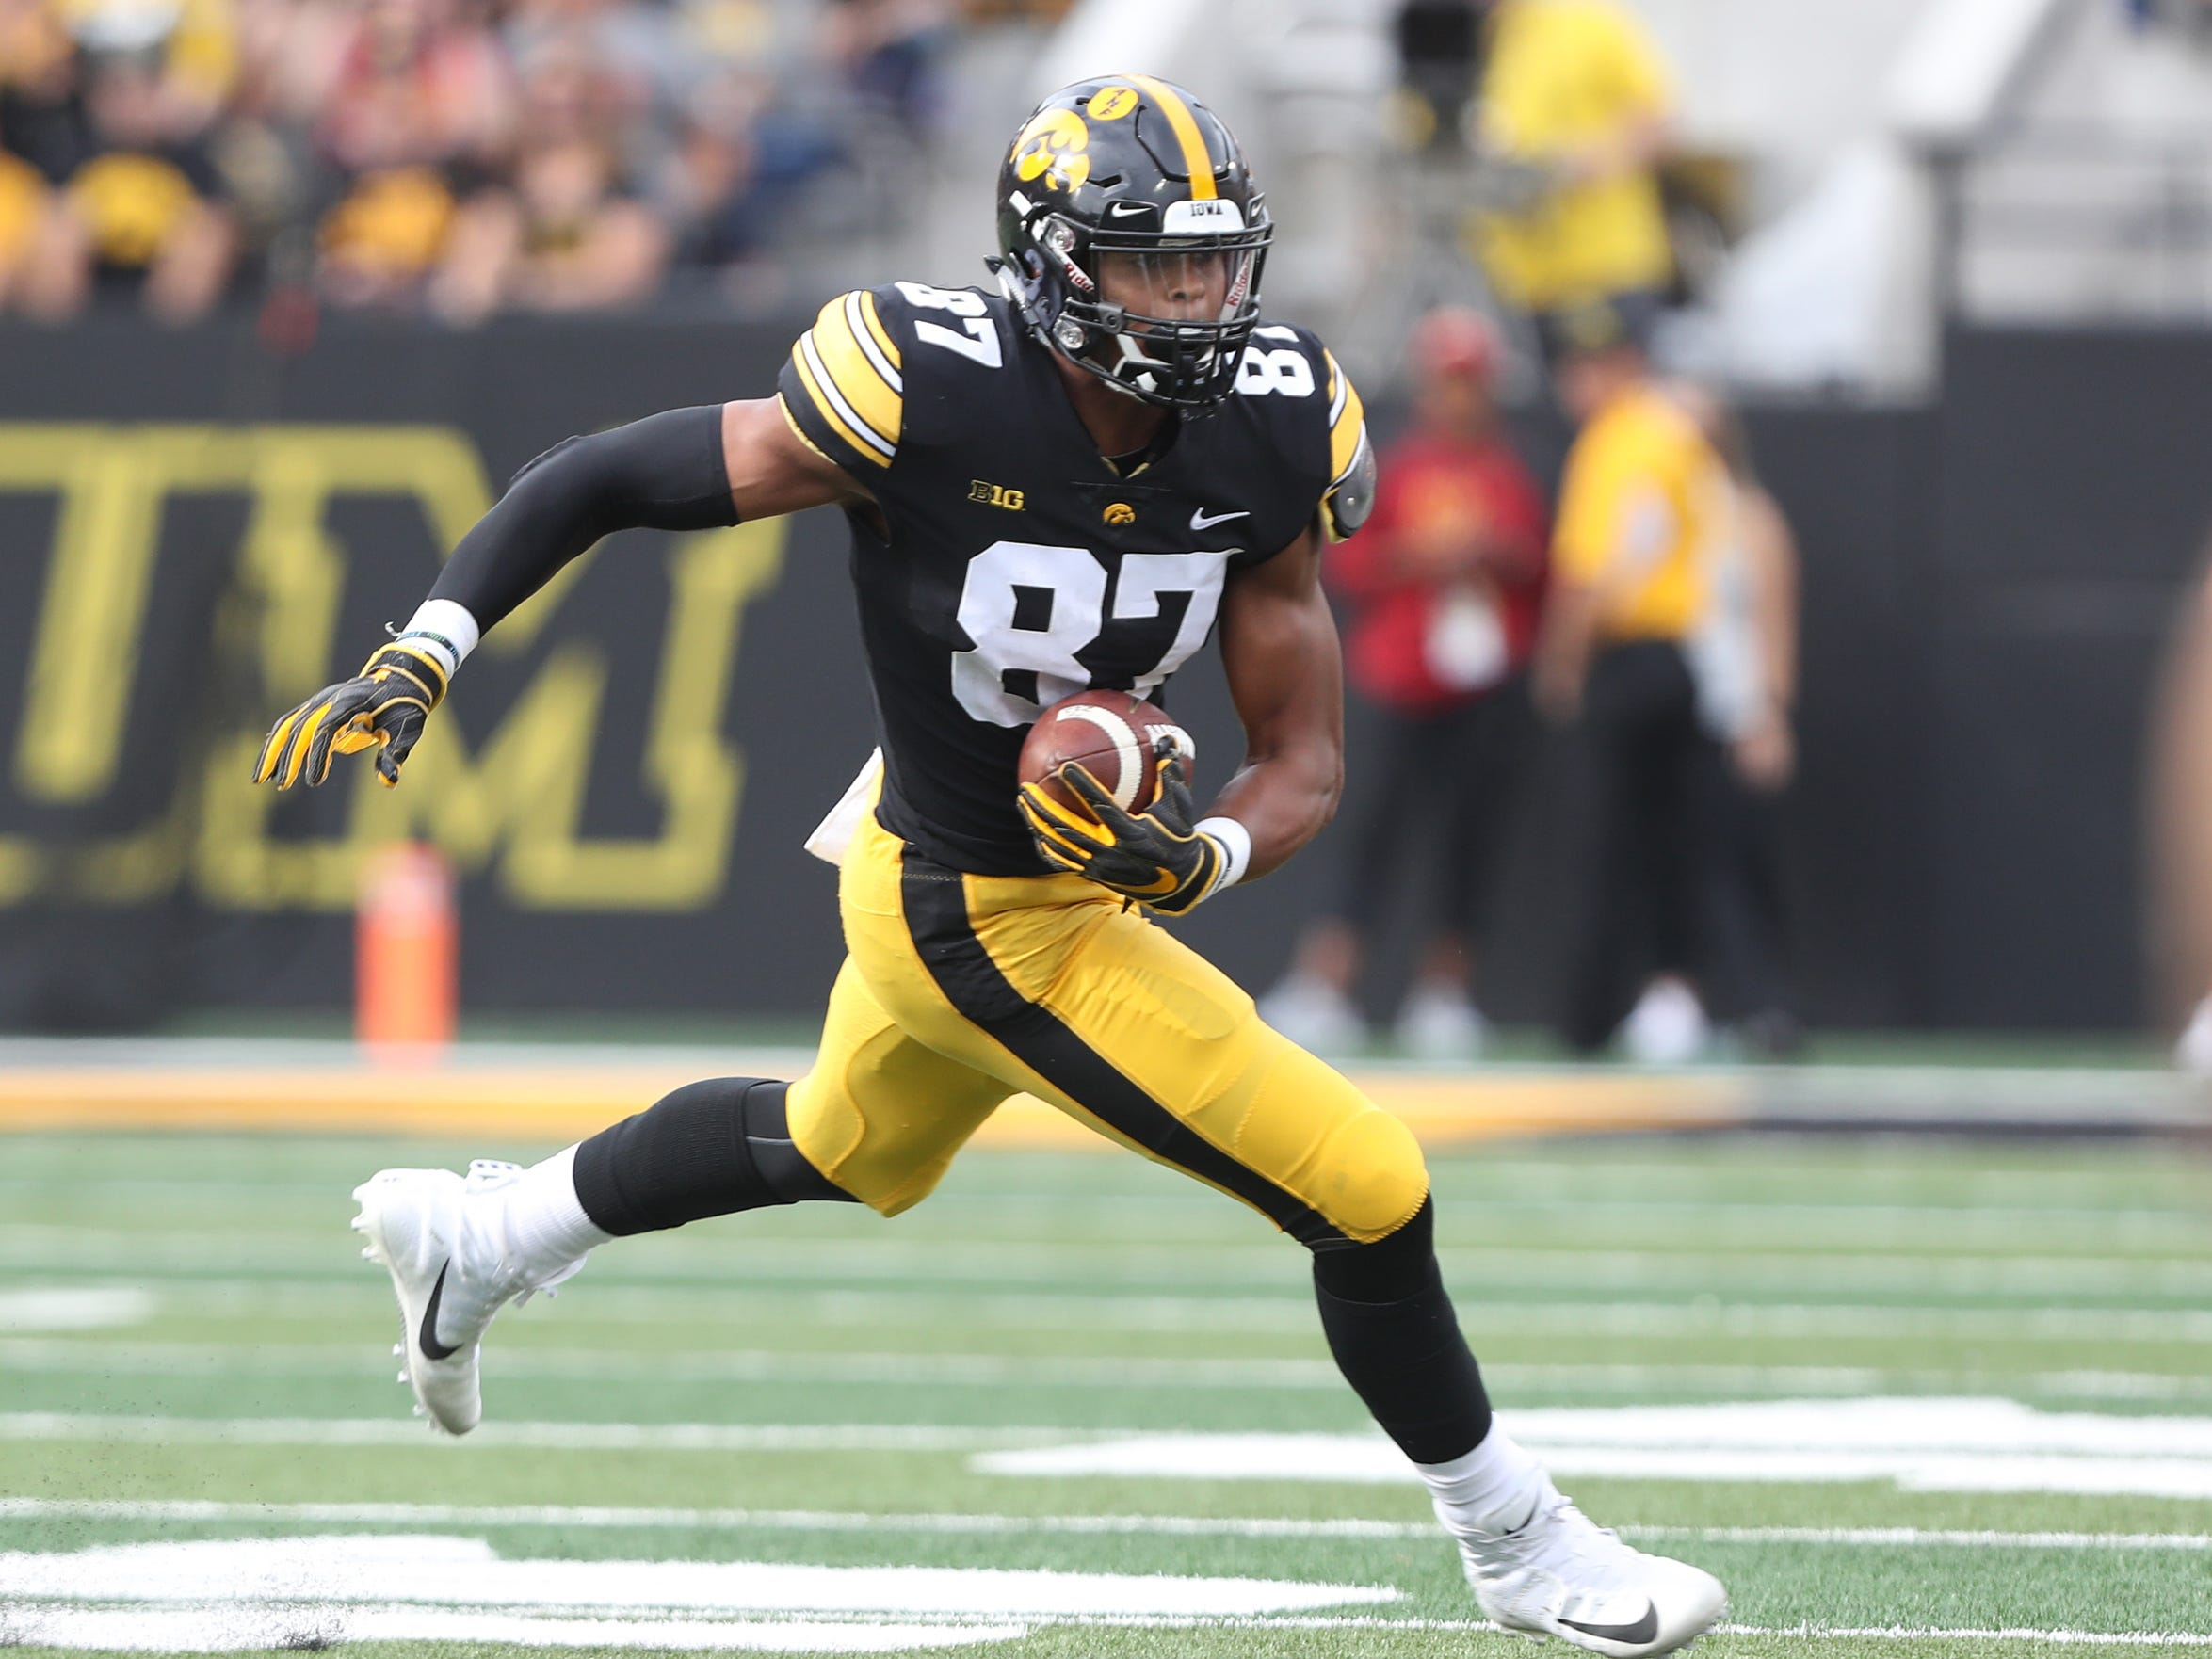 Iowa Hawkeyes tight end Noah Fant.